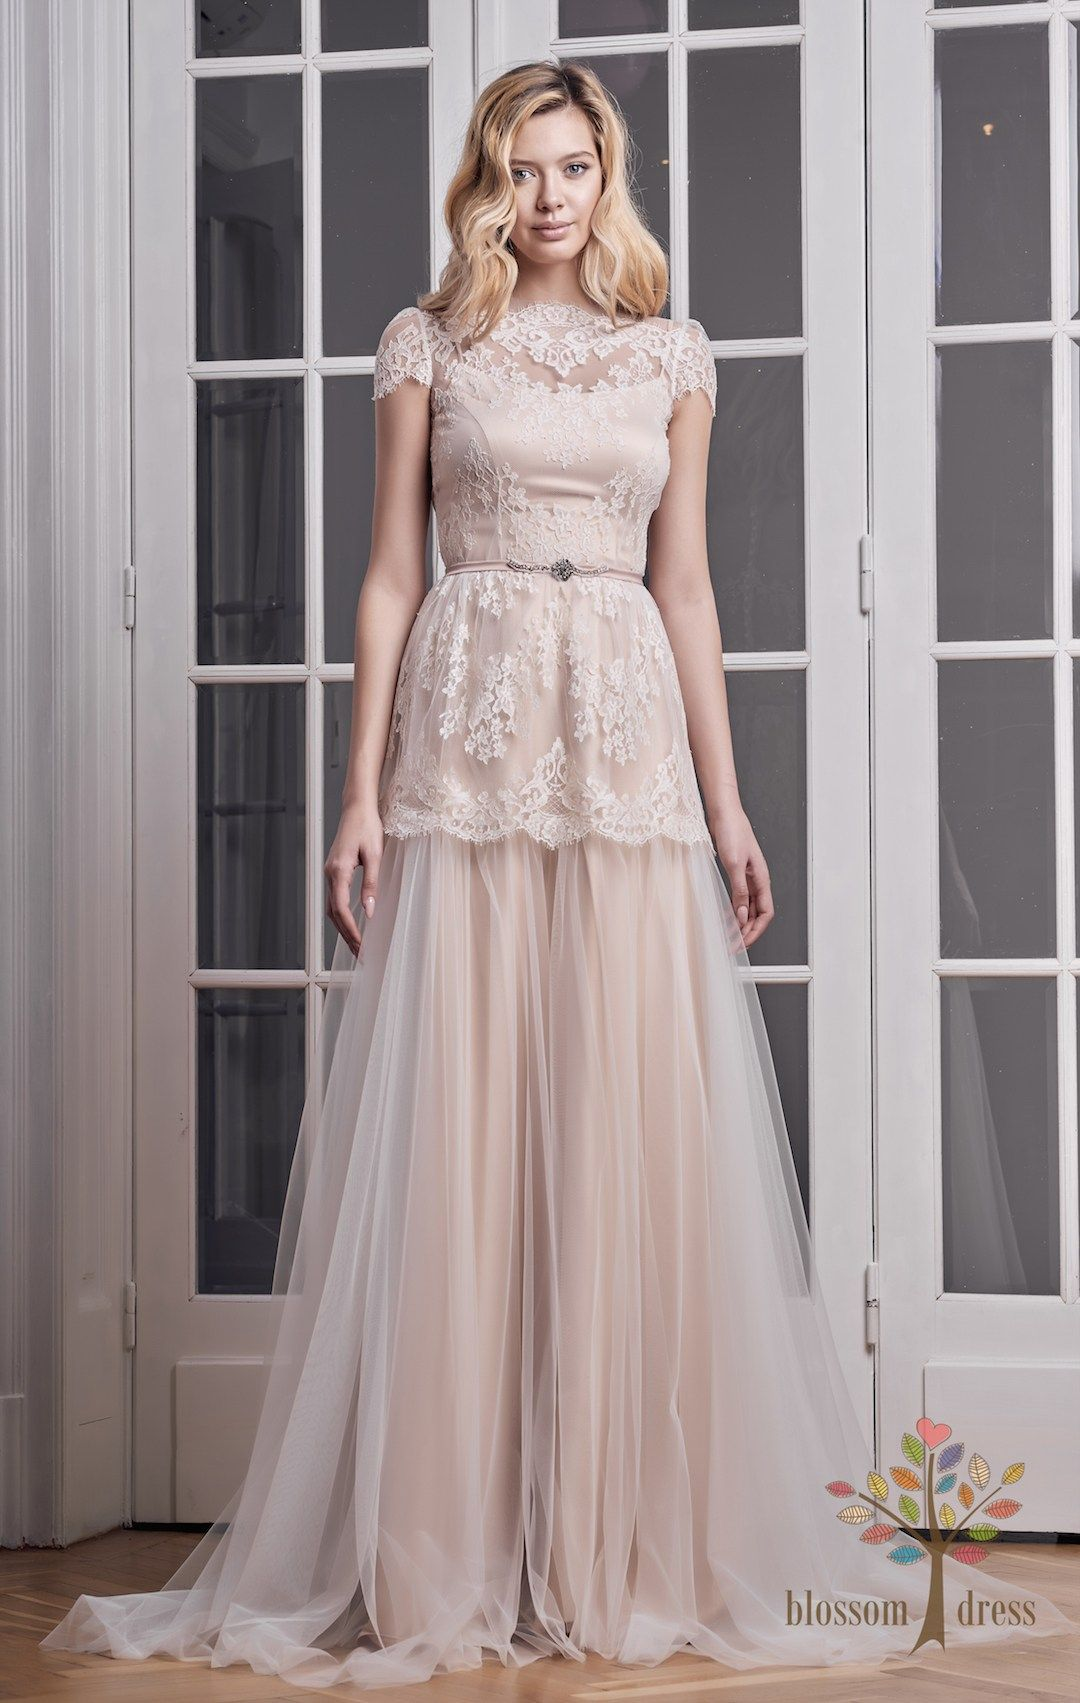 Bohemian Wedding Dress Made From A Delicate Solstiss French Lace And Soft Italian The Colour Is Beige Salmon Warm Pleasant